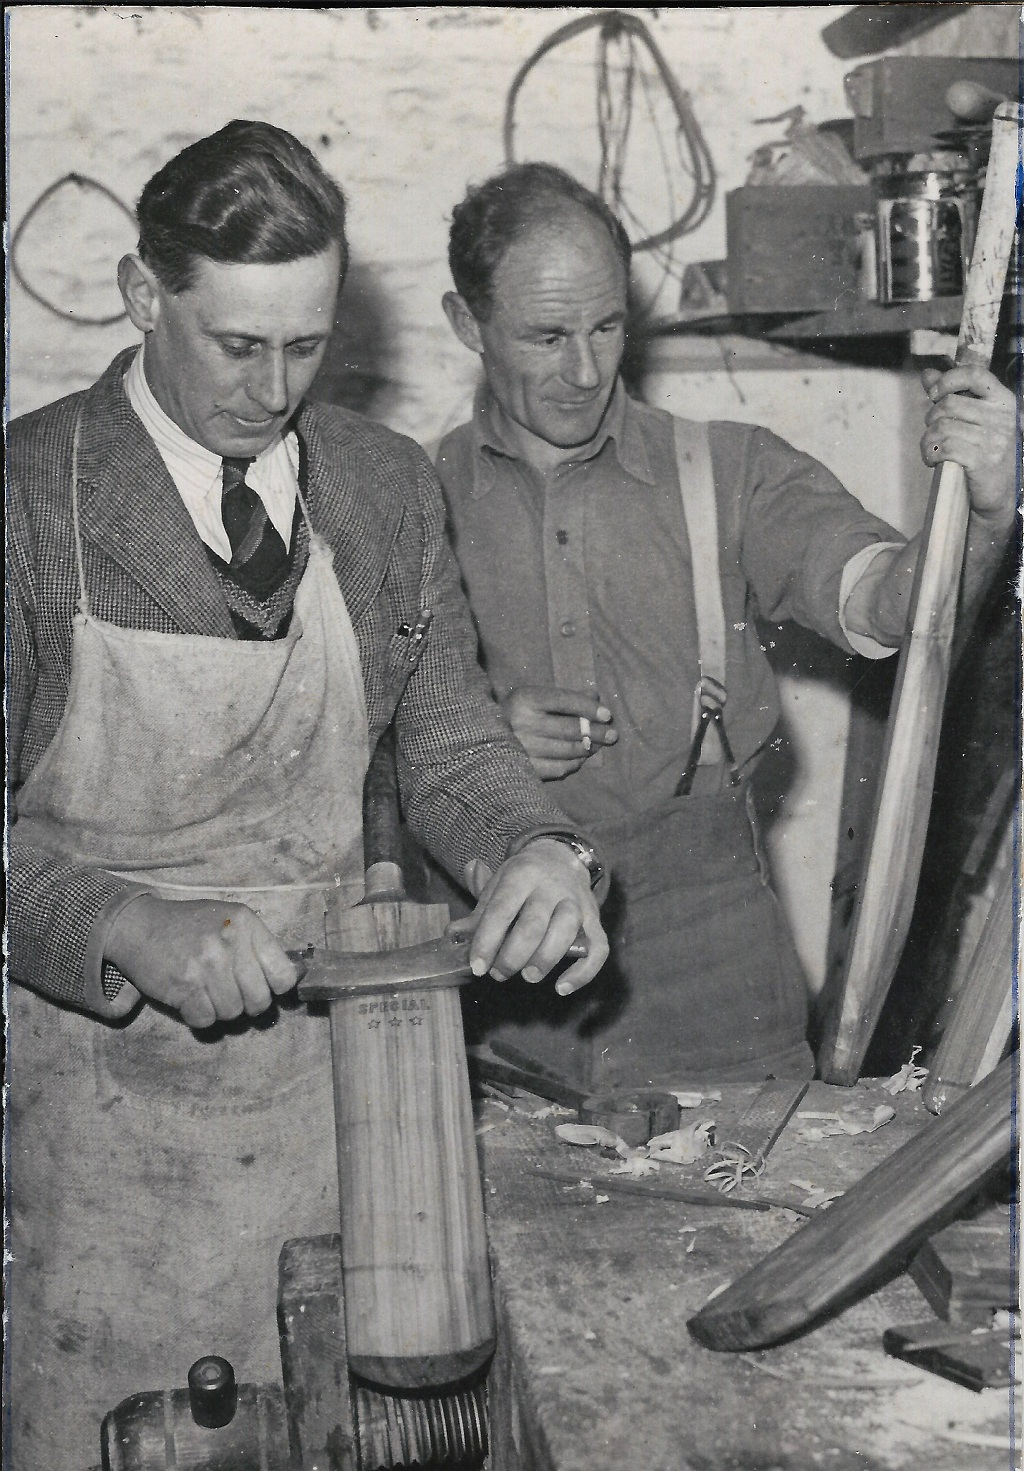 Cecil Barnes & Jack Osborne trying their hand at making a cricket bat